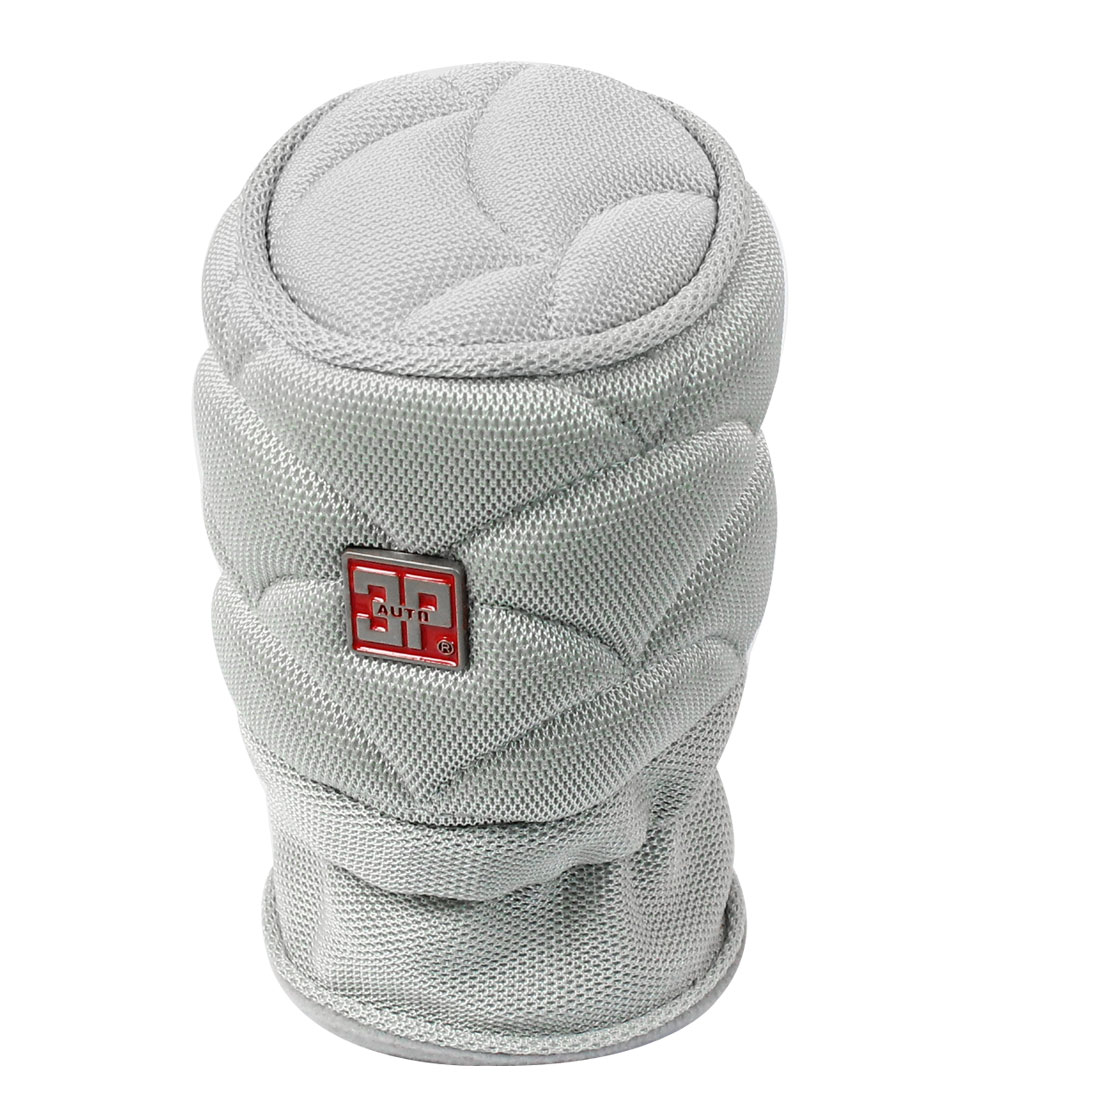 12cm x 8cm Gray Antislip Nylon Auto Gear Shift Knob Cover Protector